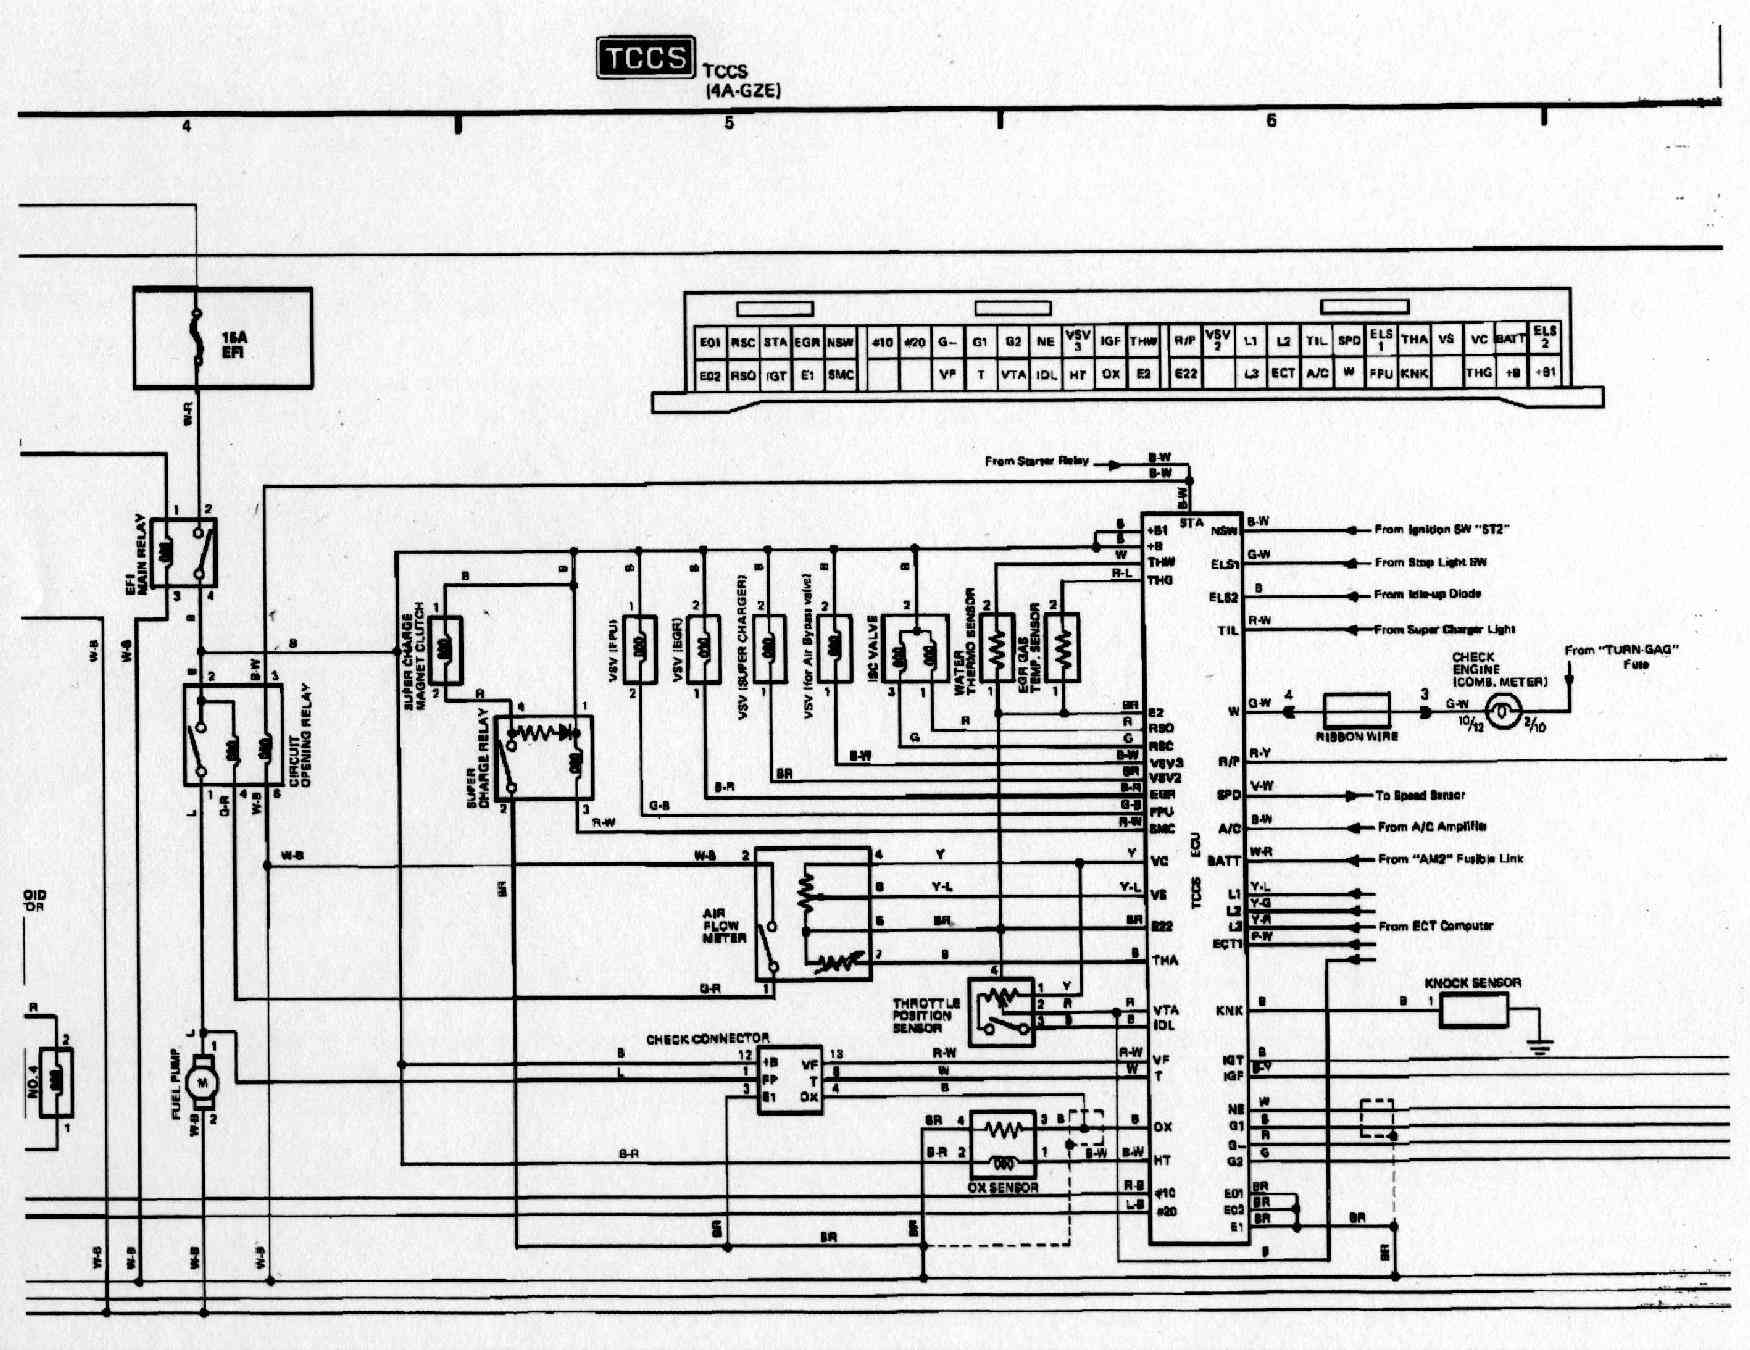 mk1 mr2 fuse diagram best part of wiring diagram